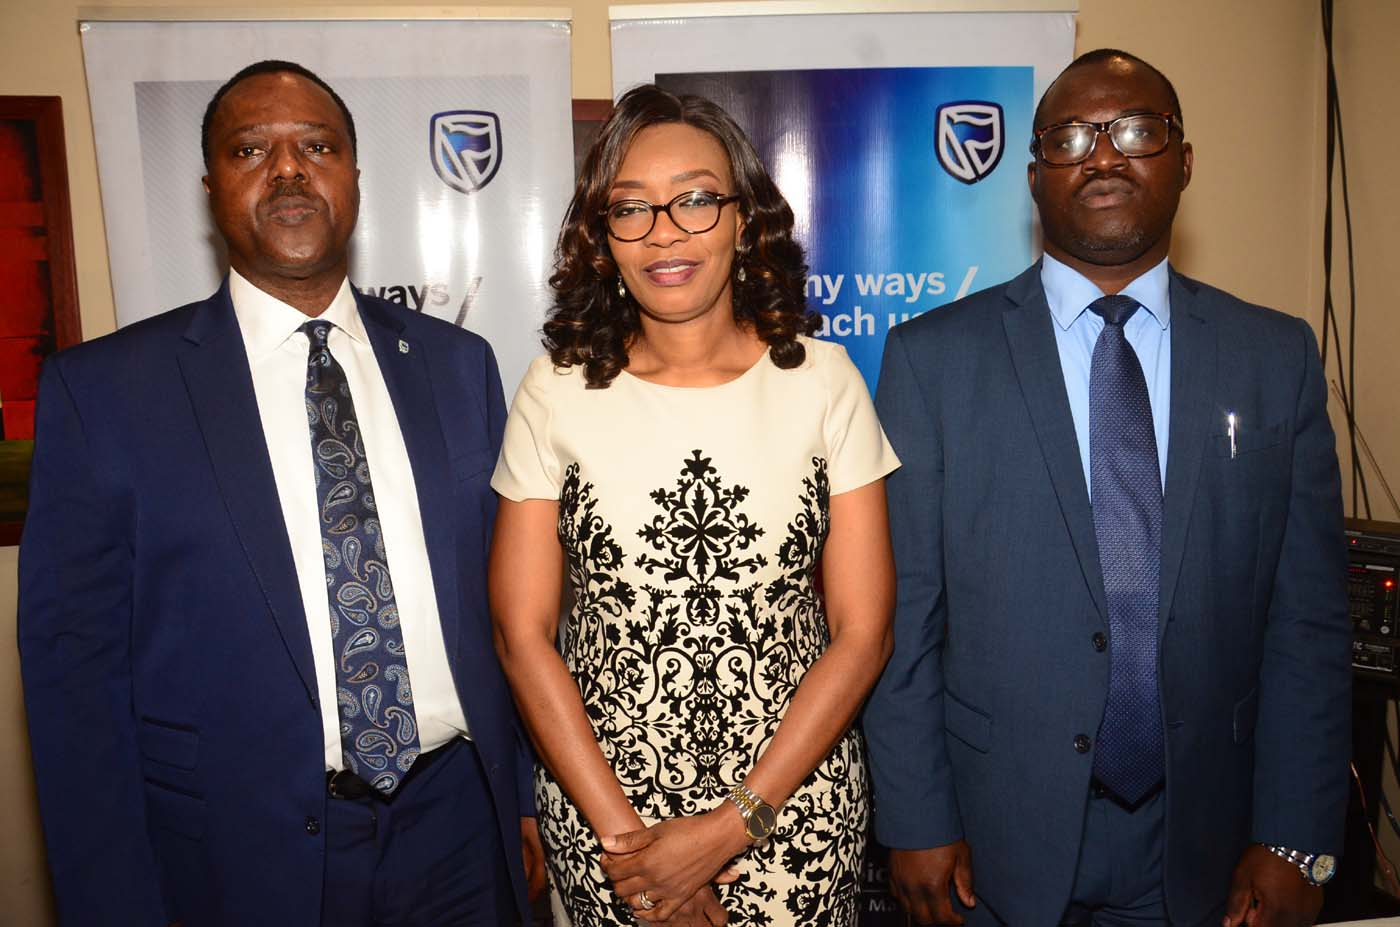 L-R: Chief Executive, Stanbic IBTC Pension Managers Limited, Mr Eric Fajemisin; Executive Director, Business Development, Stanbic IBTC Pension Managers Limited, Mrs Nike Bajomo; and Head, Micro Pension and Agency, Mr Abimbola Oladele, at the launch of Stanbic IBTC Pension Managers' micro pension campaign, held in Lagos